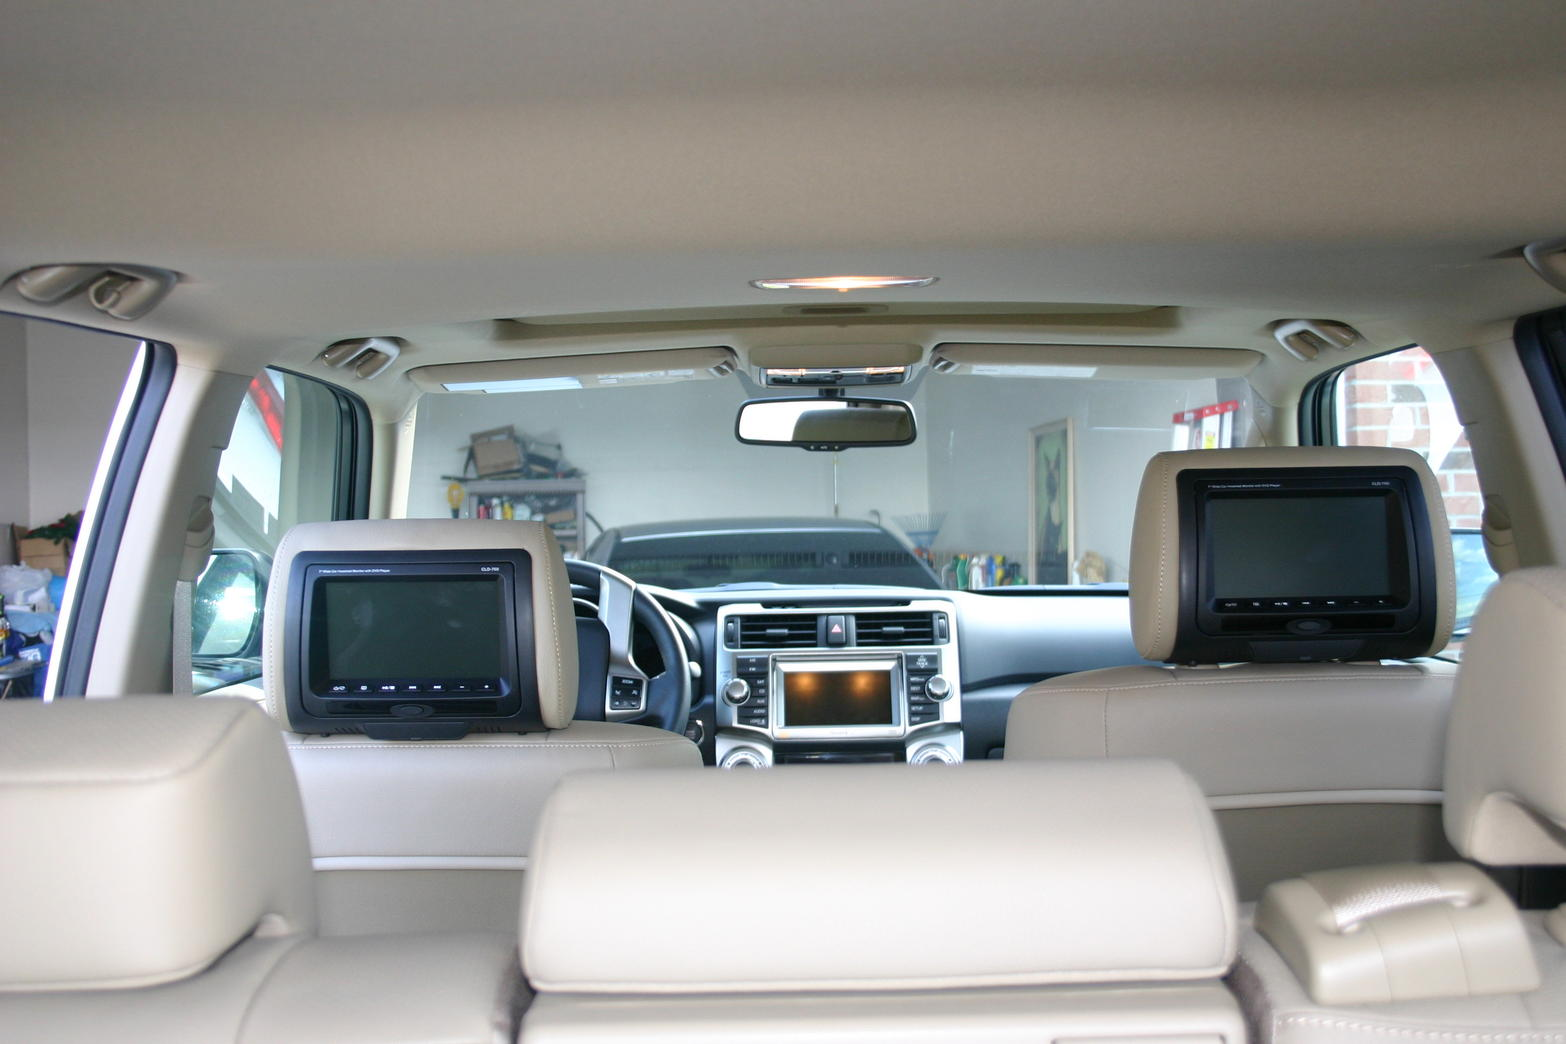 new headrest dvd toyota 4runner forum largest 4runner. Black Bedroom Furniture Sets. Home Design Ideas